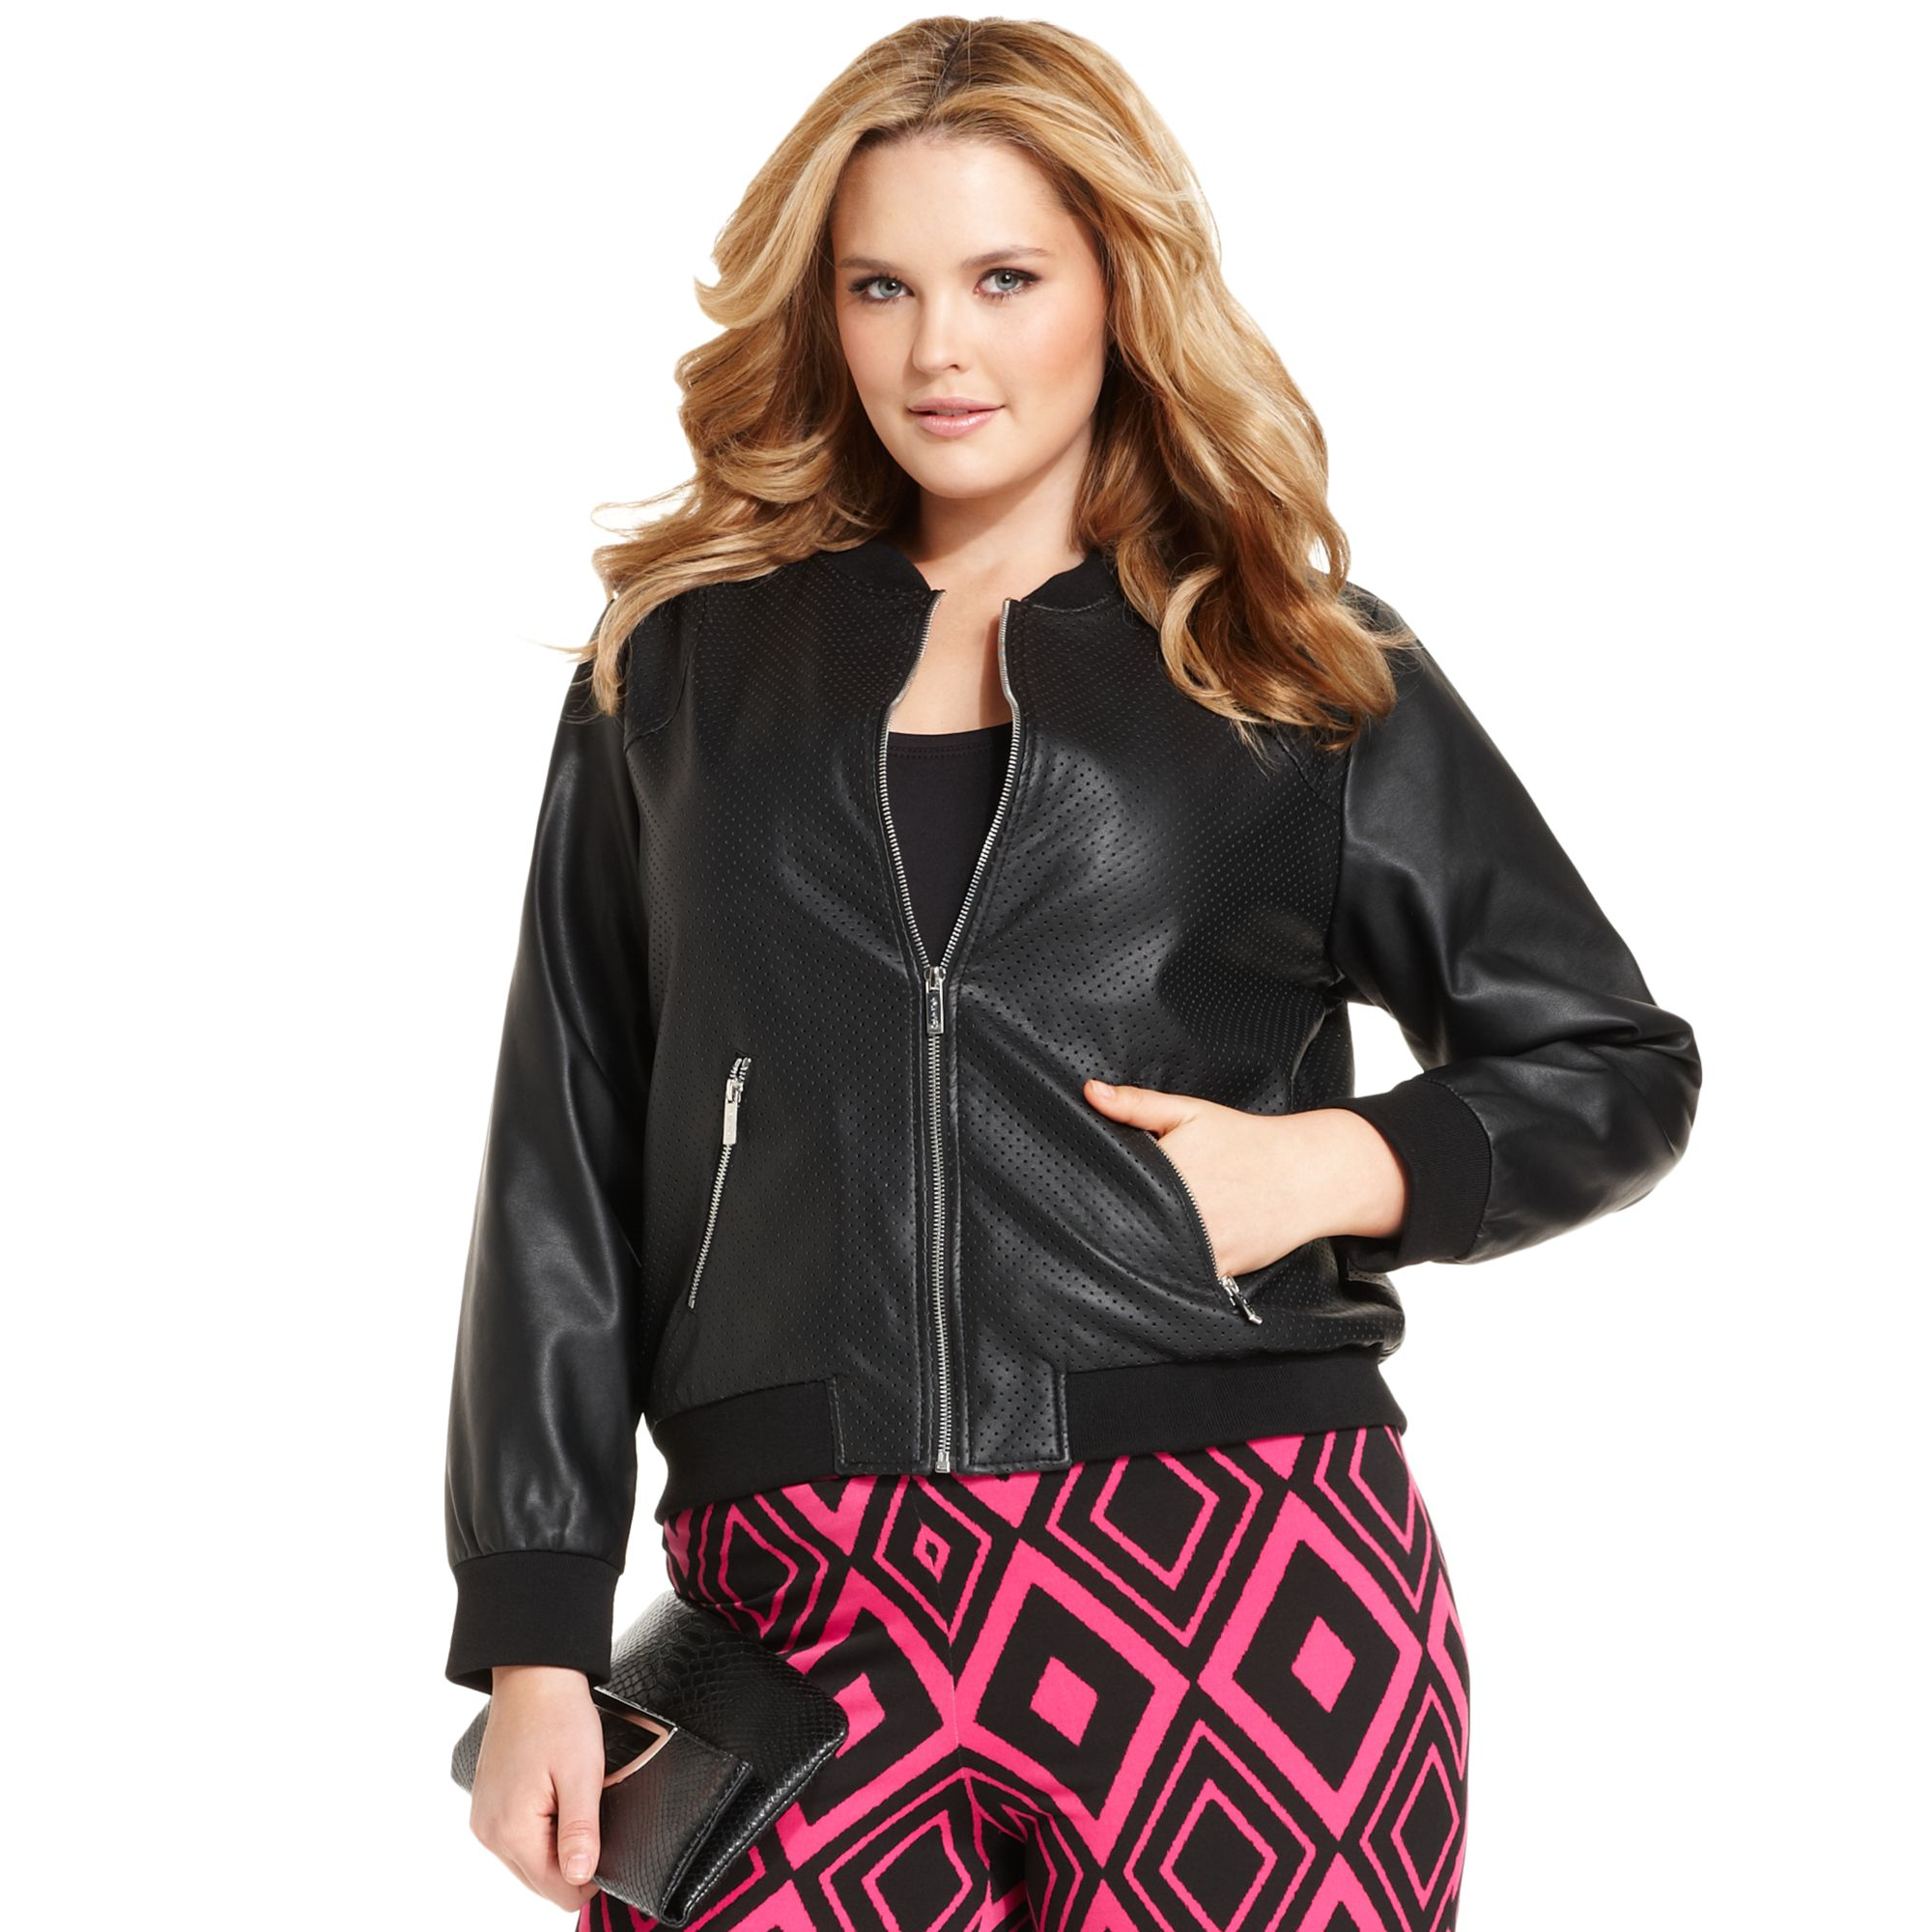 Plus size winter clothing online india